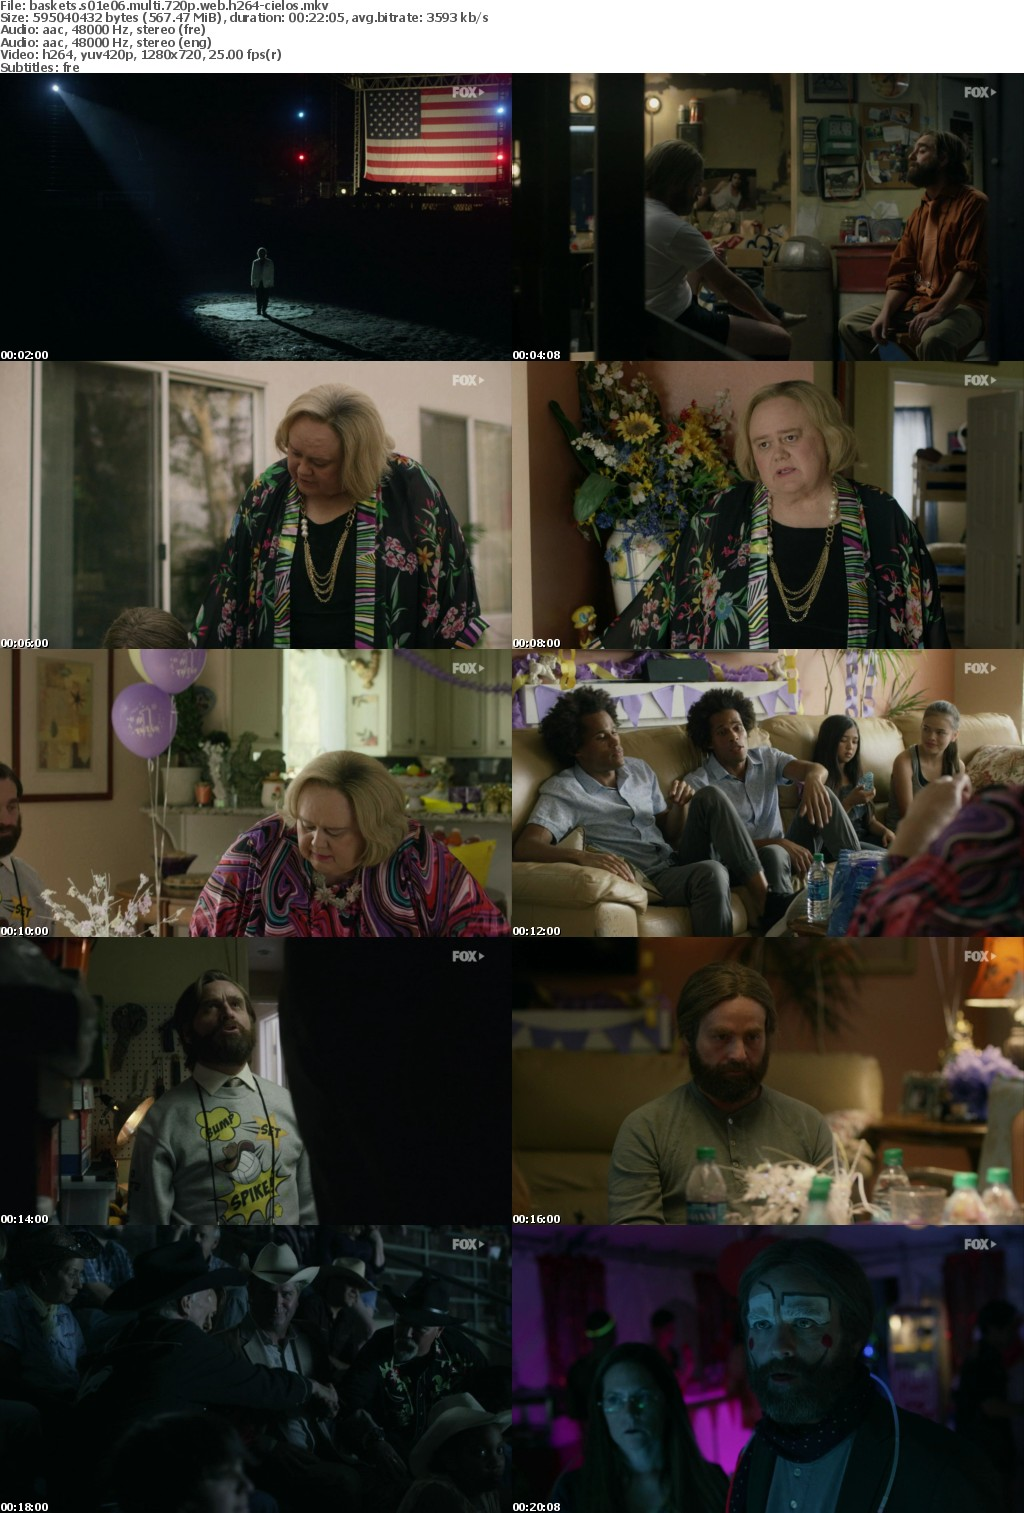 Baskets S01E06 MULTi 720p WEB H264-CiELOS